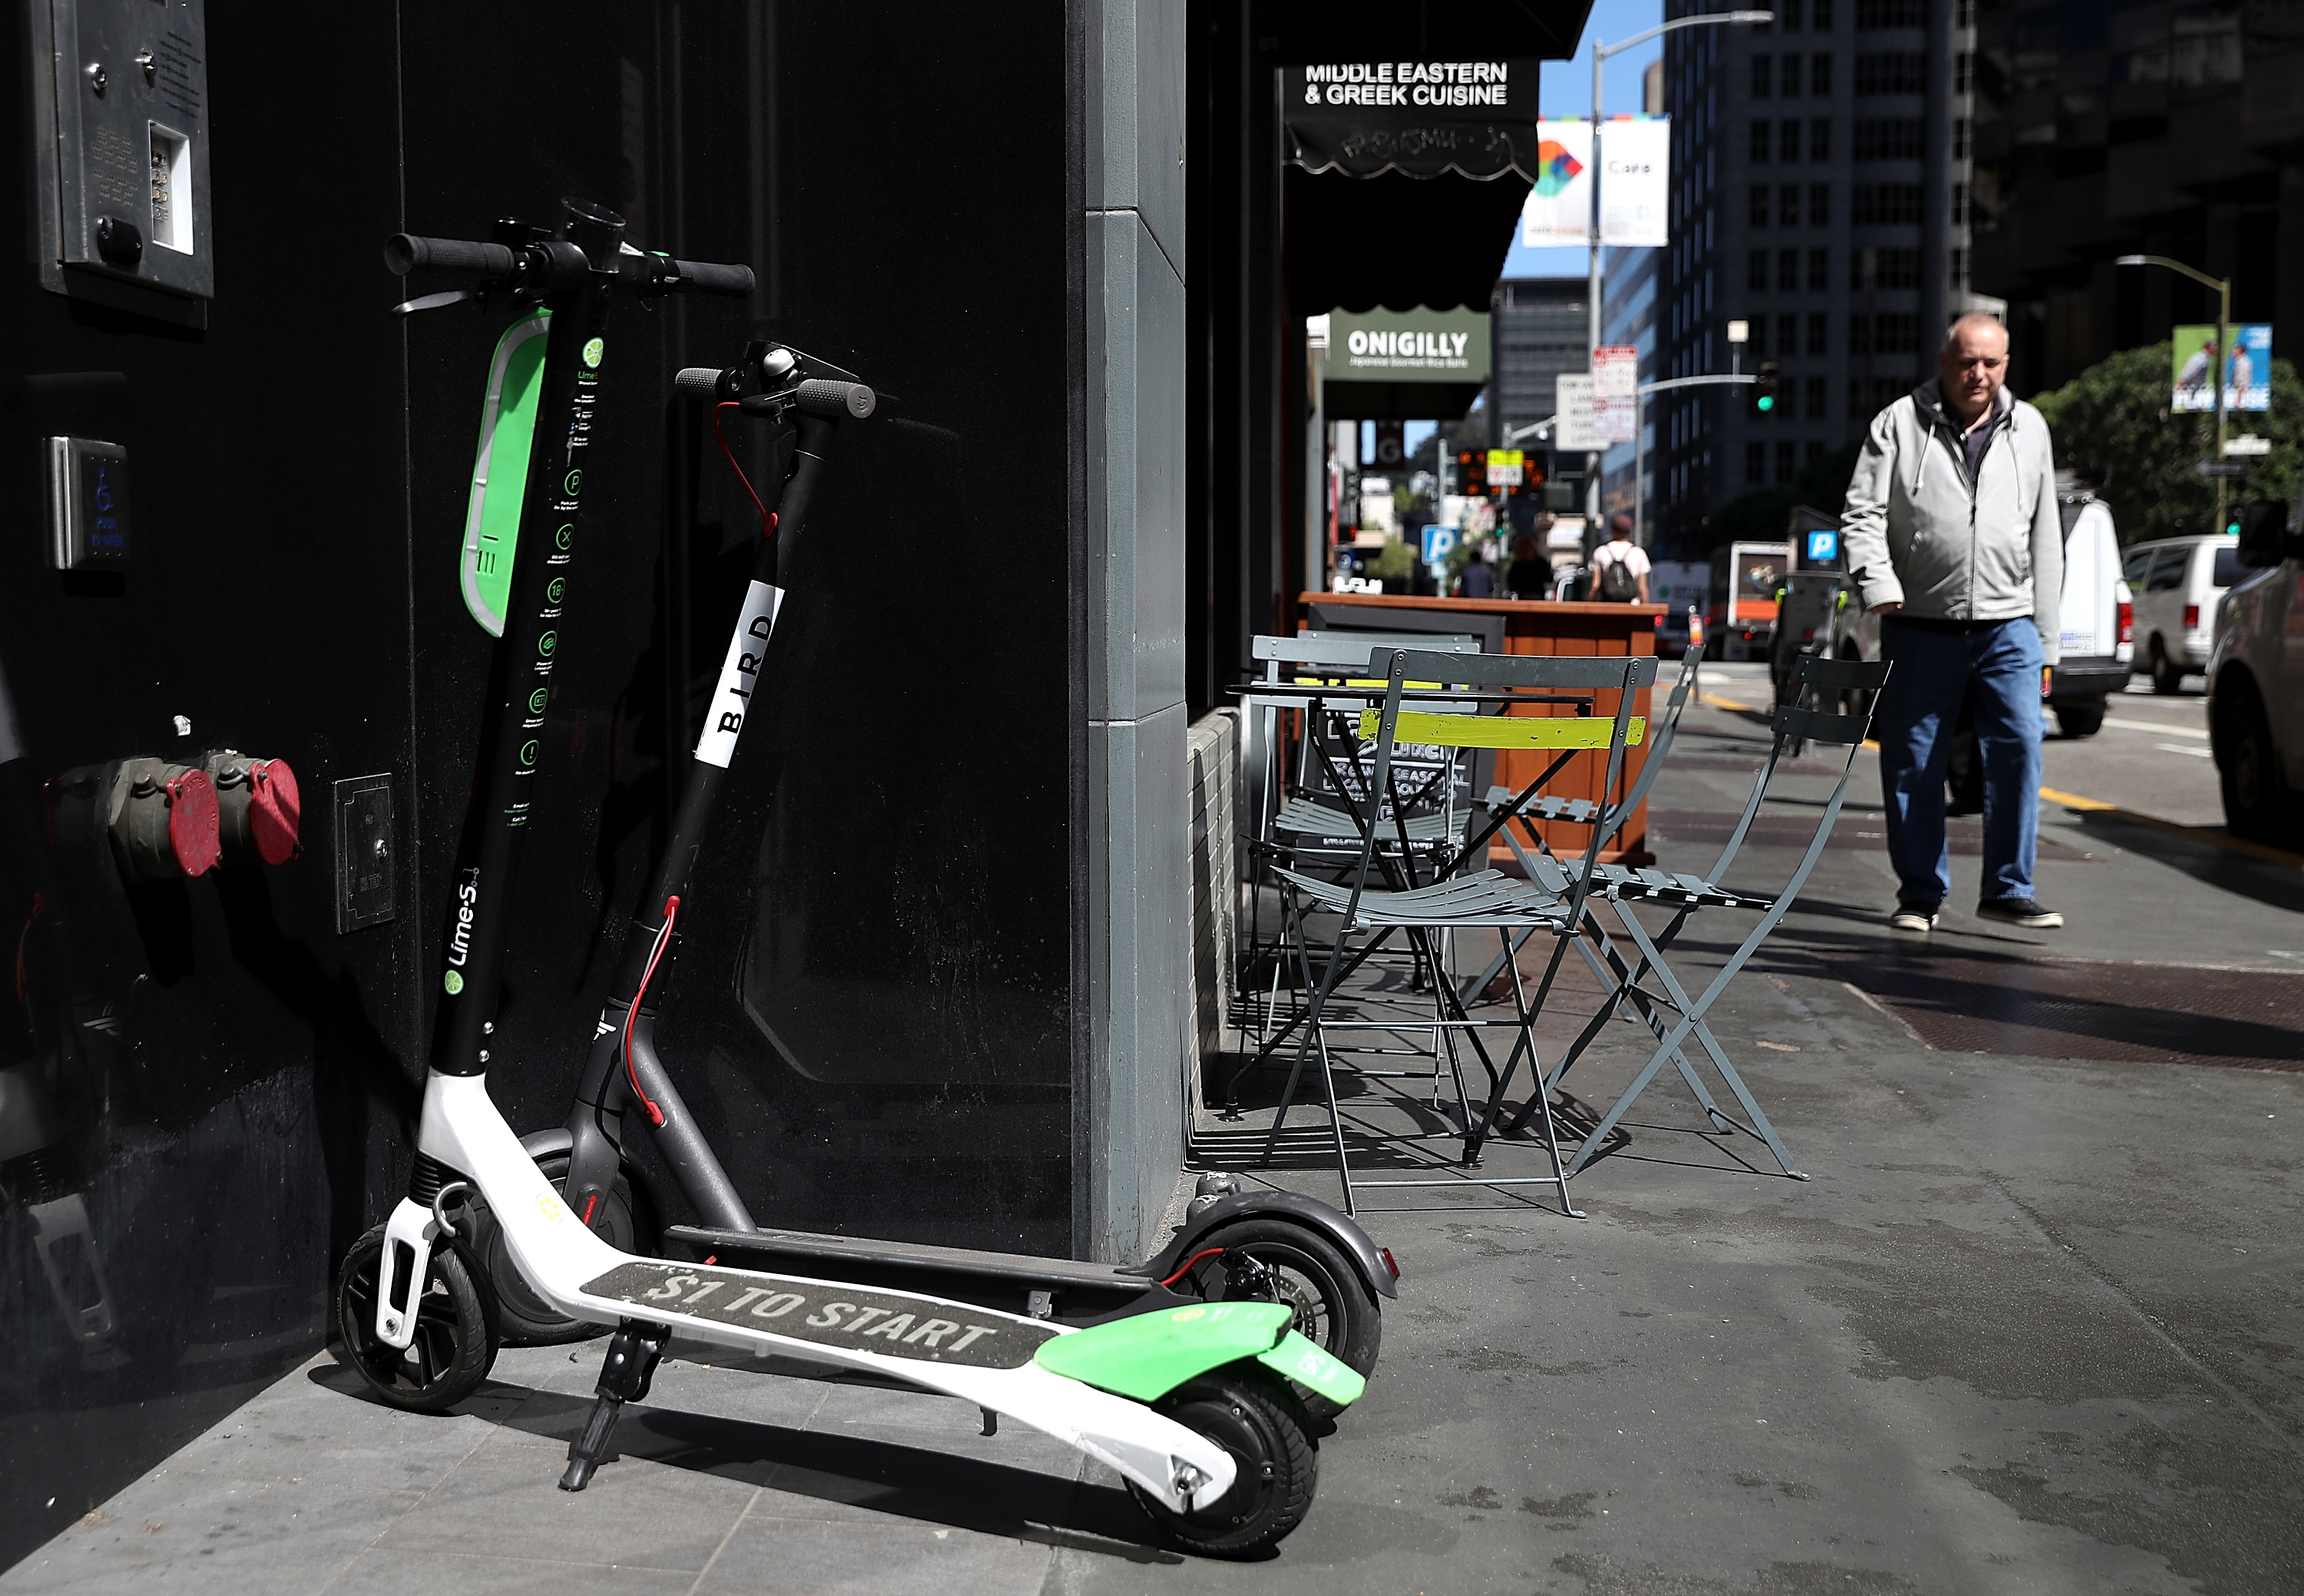 san francisco to scooter startups: your customers are terrible | ars